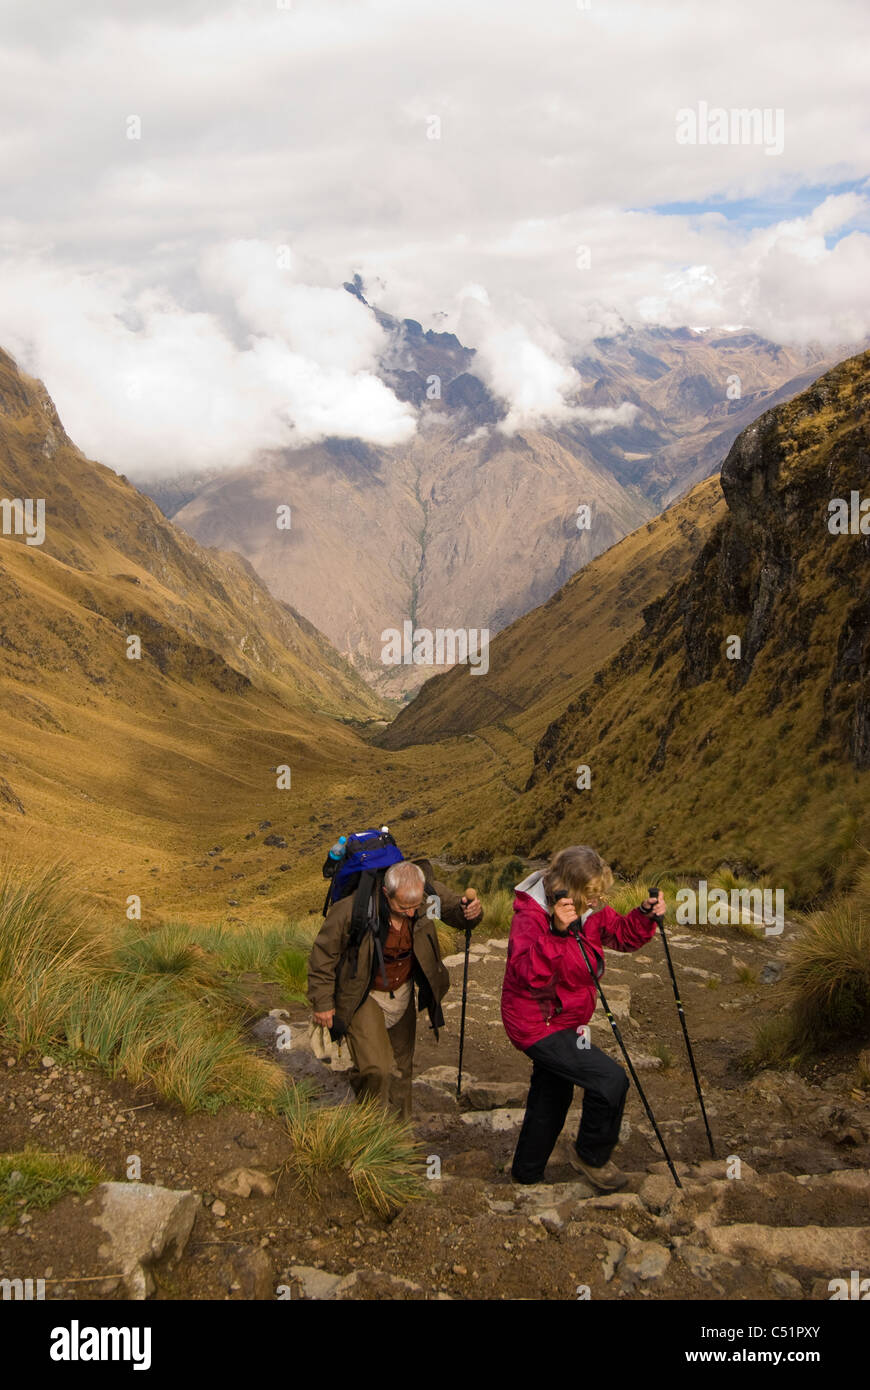 Couple approaching 13,775-foot high Warmiwanusca (Dead Woman) Pass on the Inca Trail in Peru - Stock Image